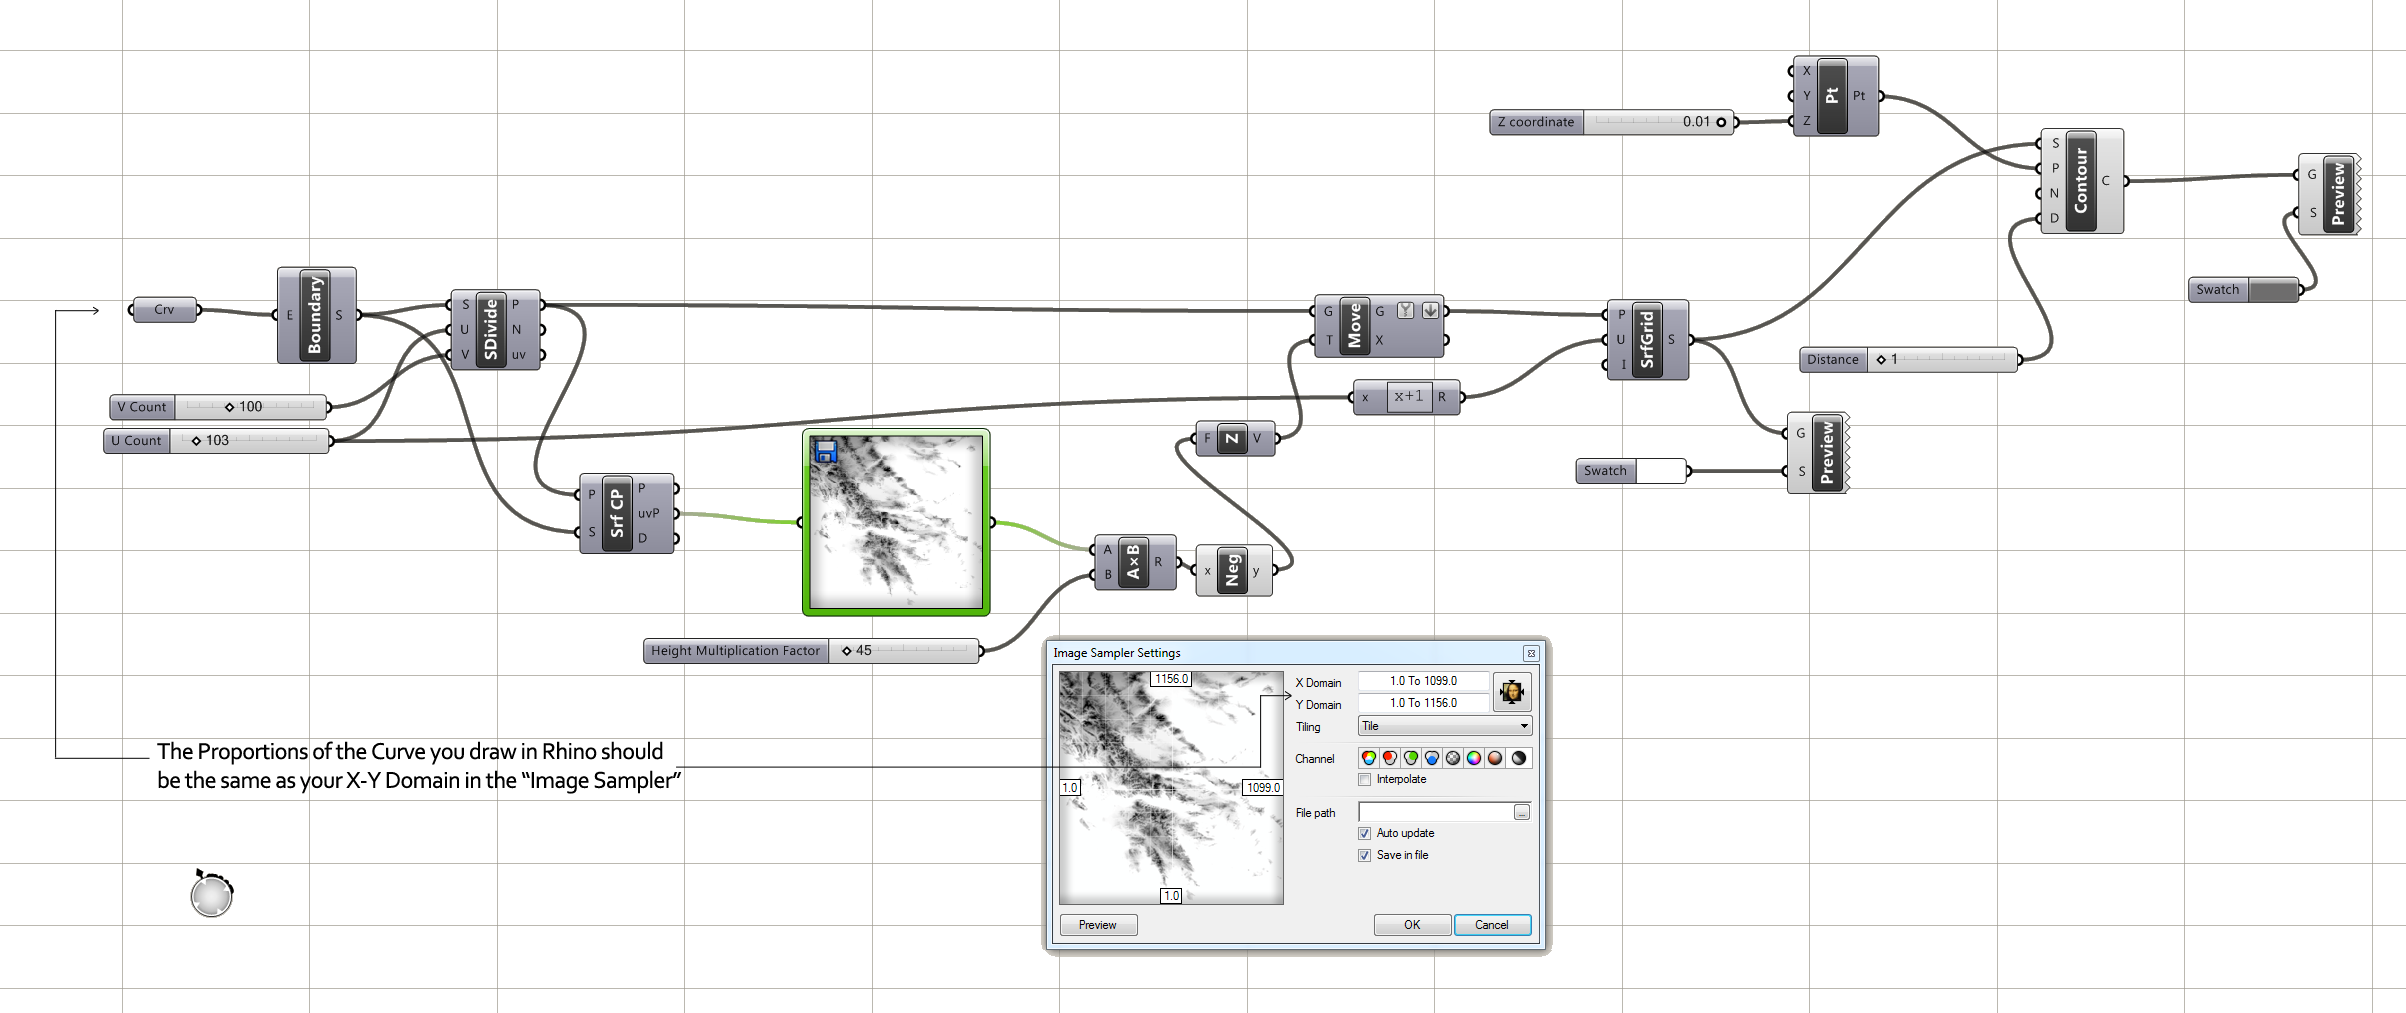 Surfaces From Image Sampler Example 46 Grasshopper Wiring Diagram Explore Rhino Grasshoppers And More